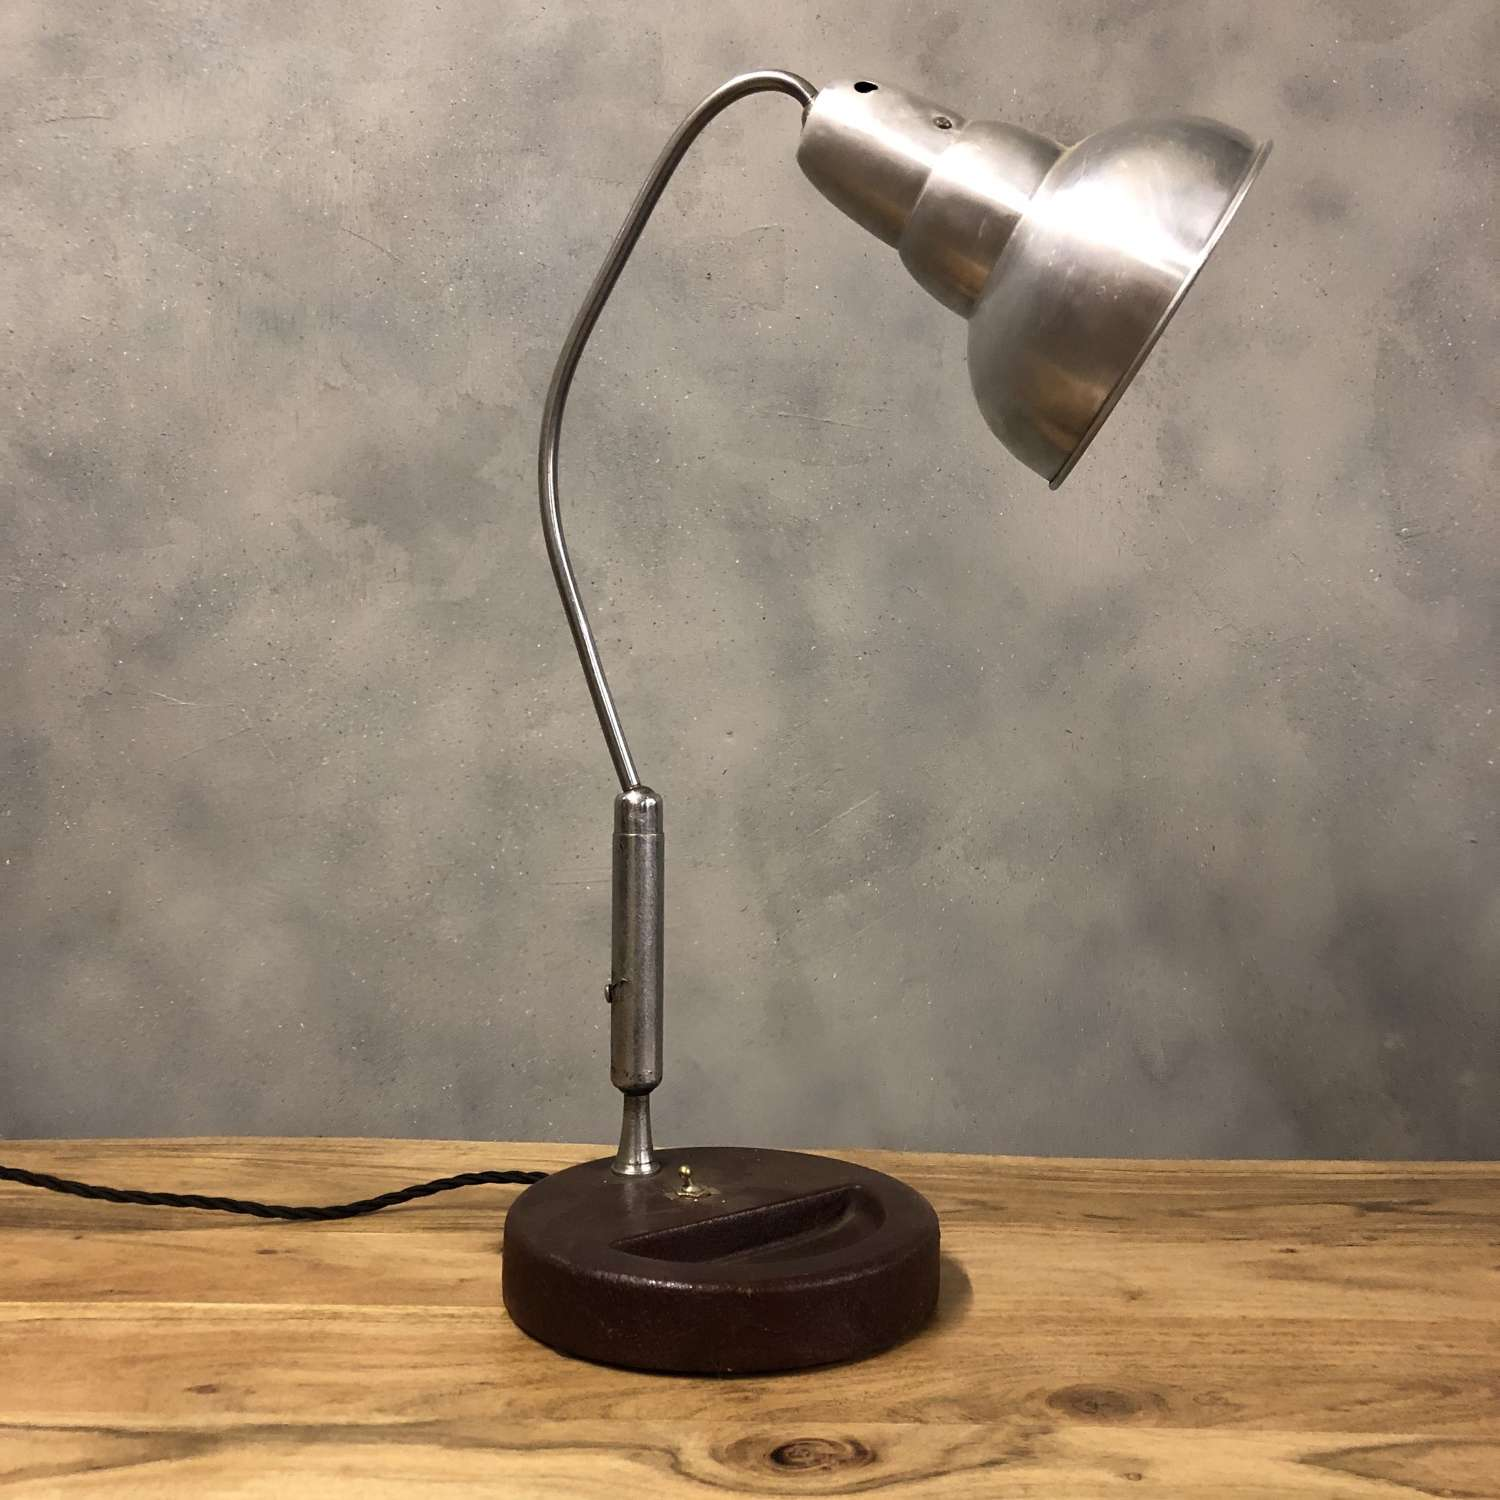 1930s Industrial lamp